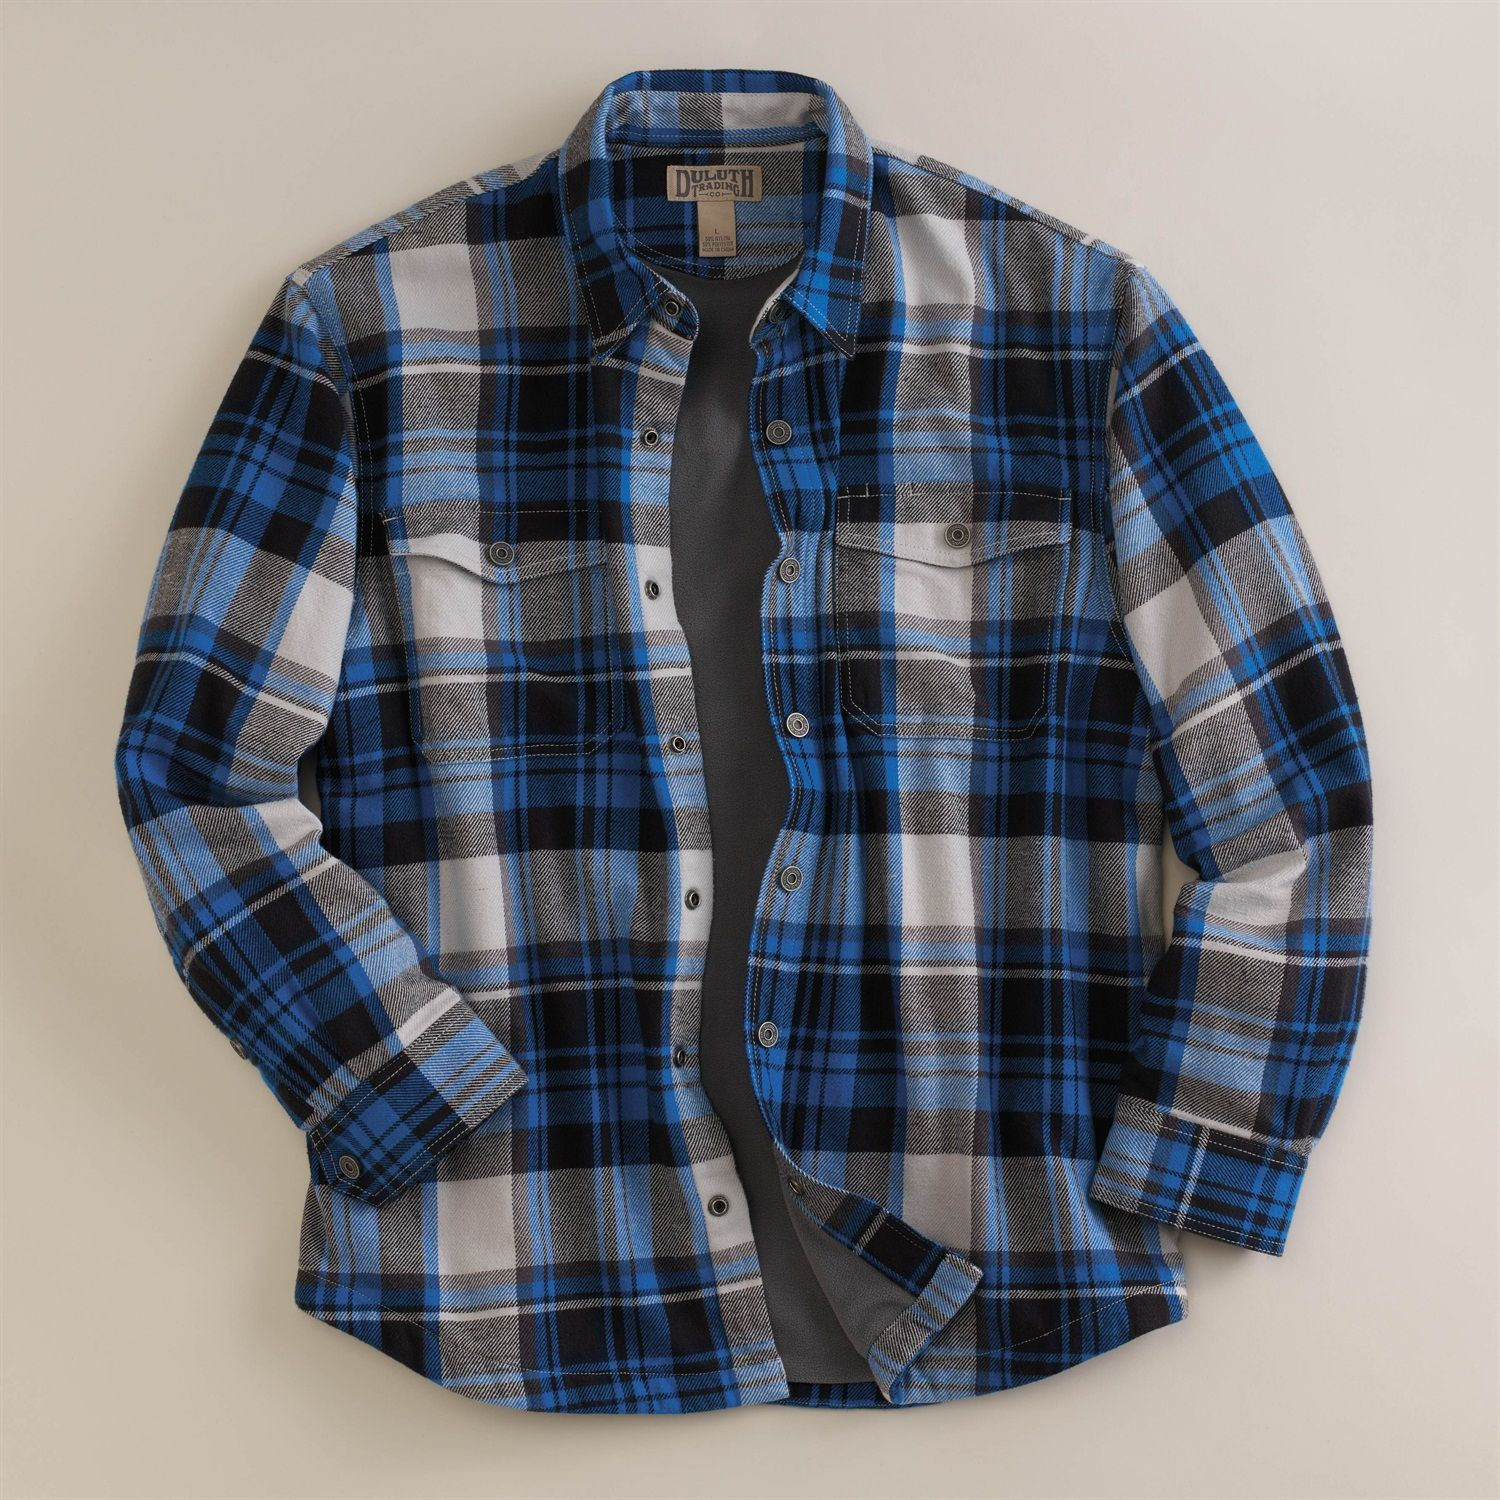 Classic bluer plaid duluth trading co men 39 s flapjack for Men flannel shirt jacket with quilted lining